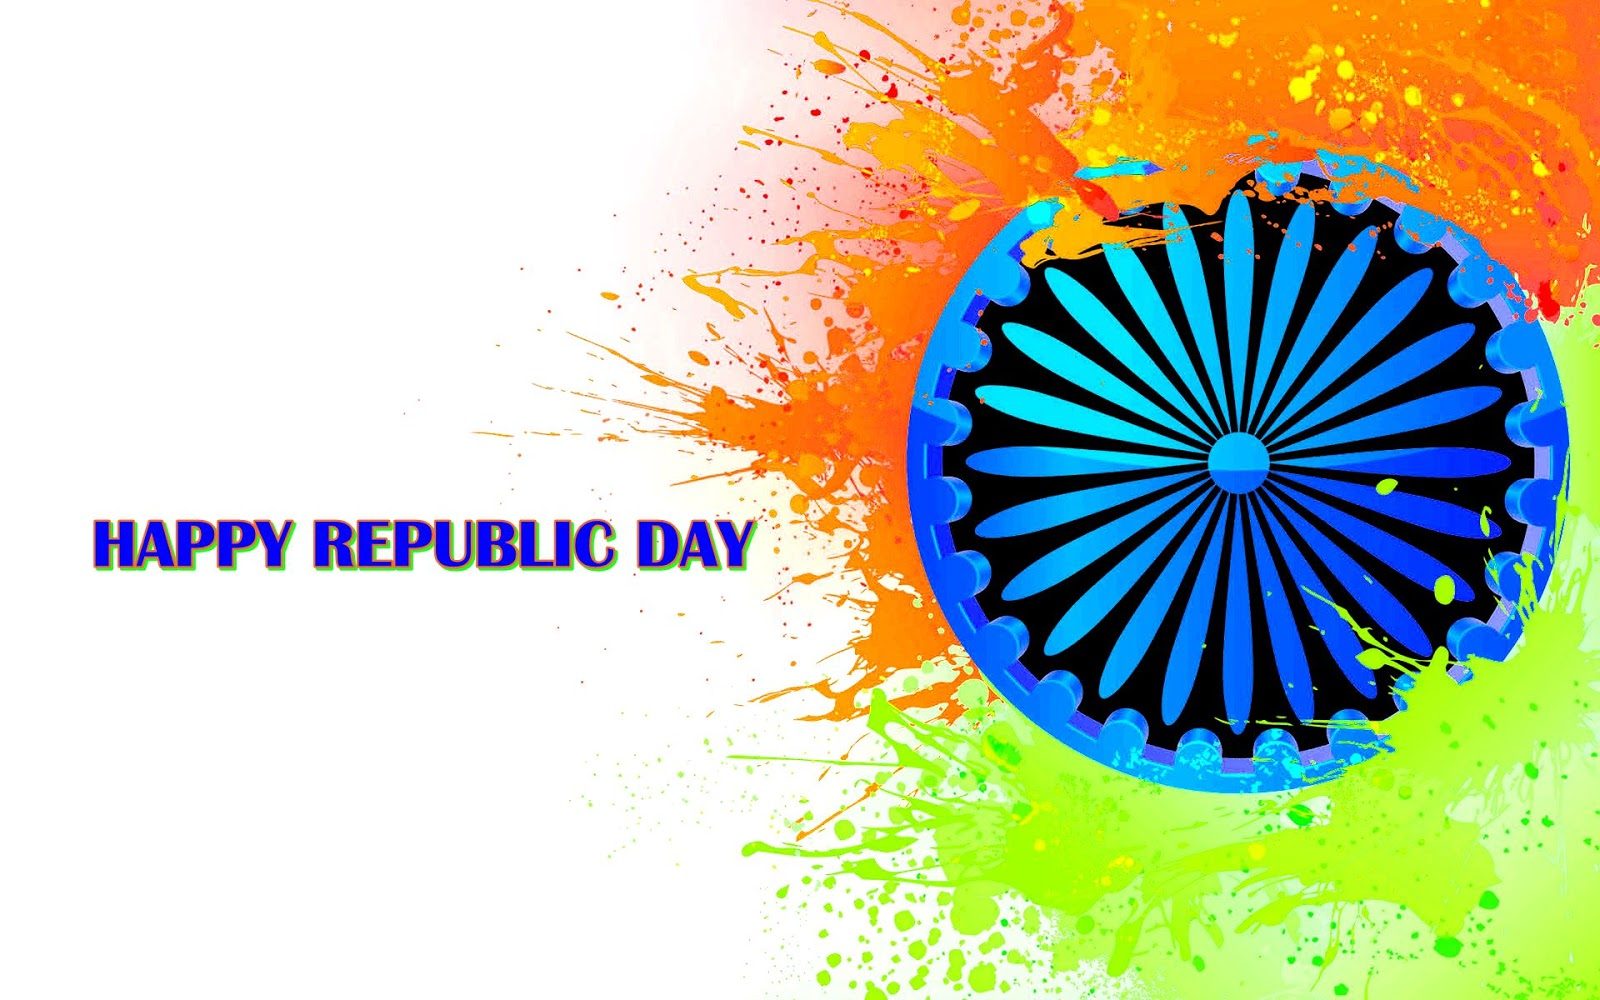 India-Happy-Republic-Day-2016-Best-Image-HD-Wallpaper-05630